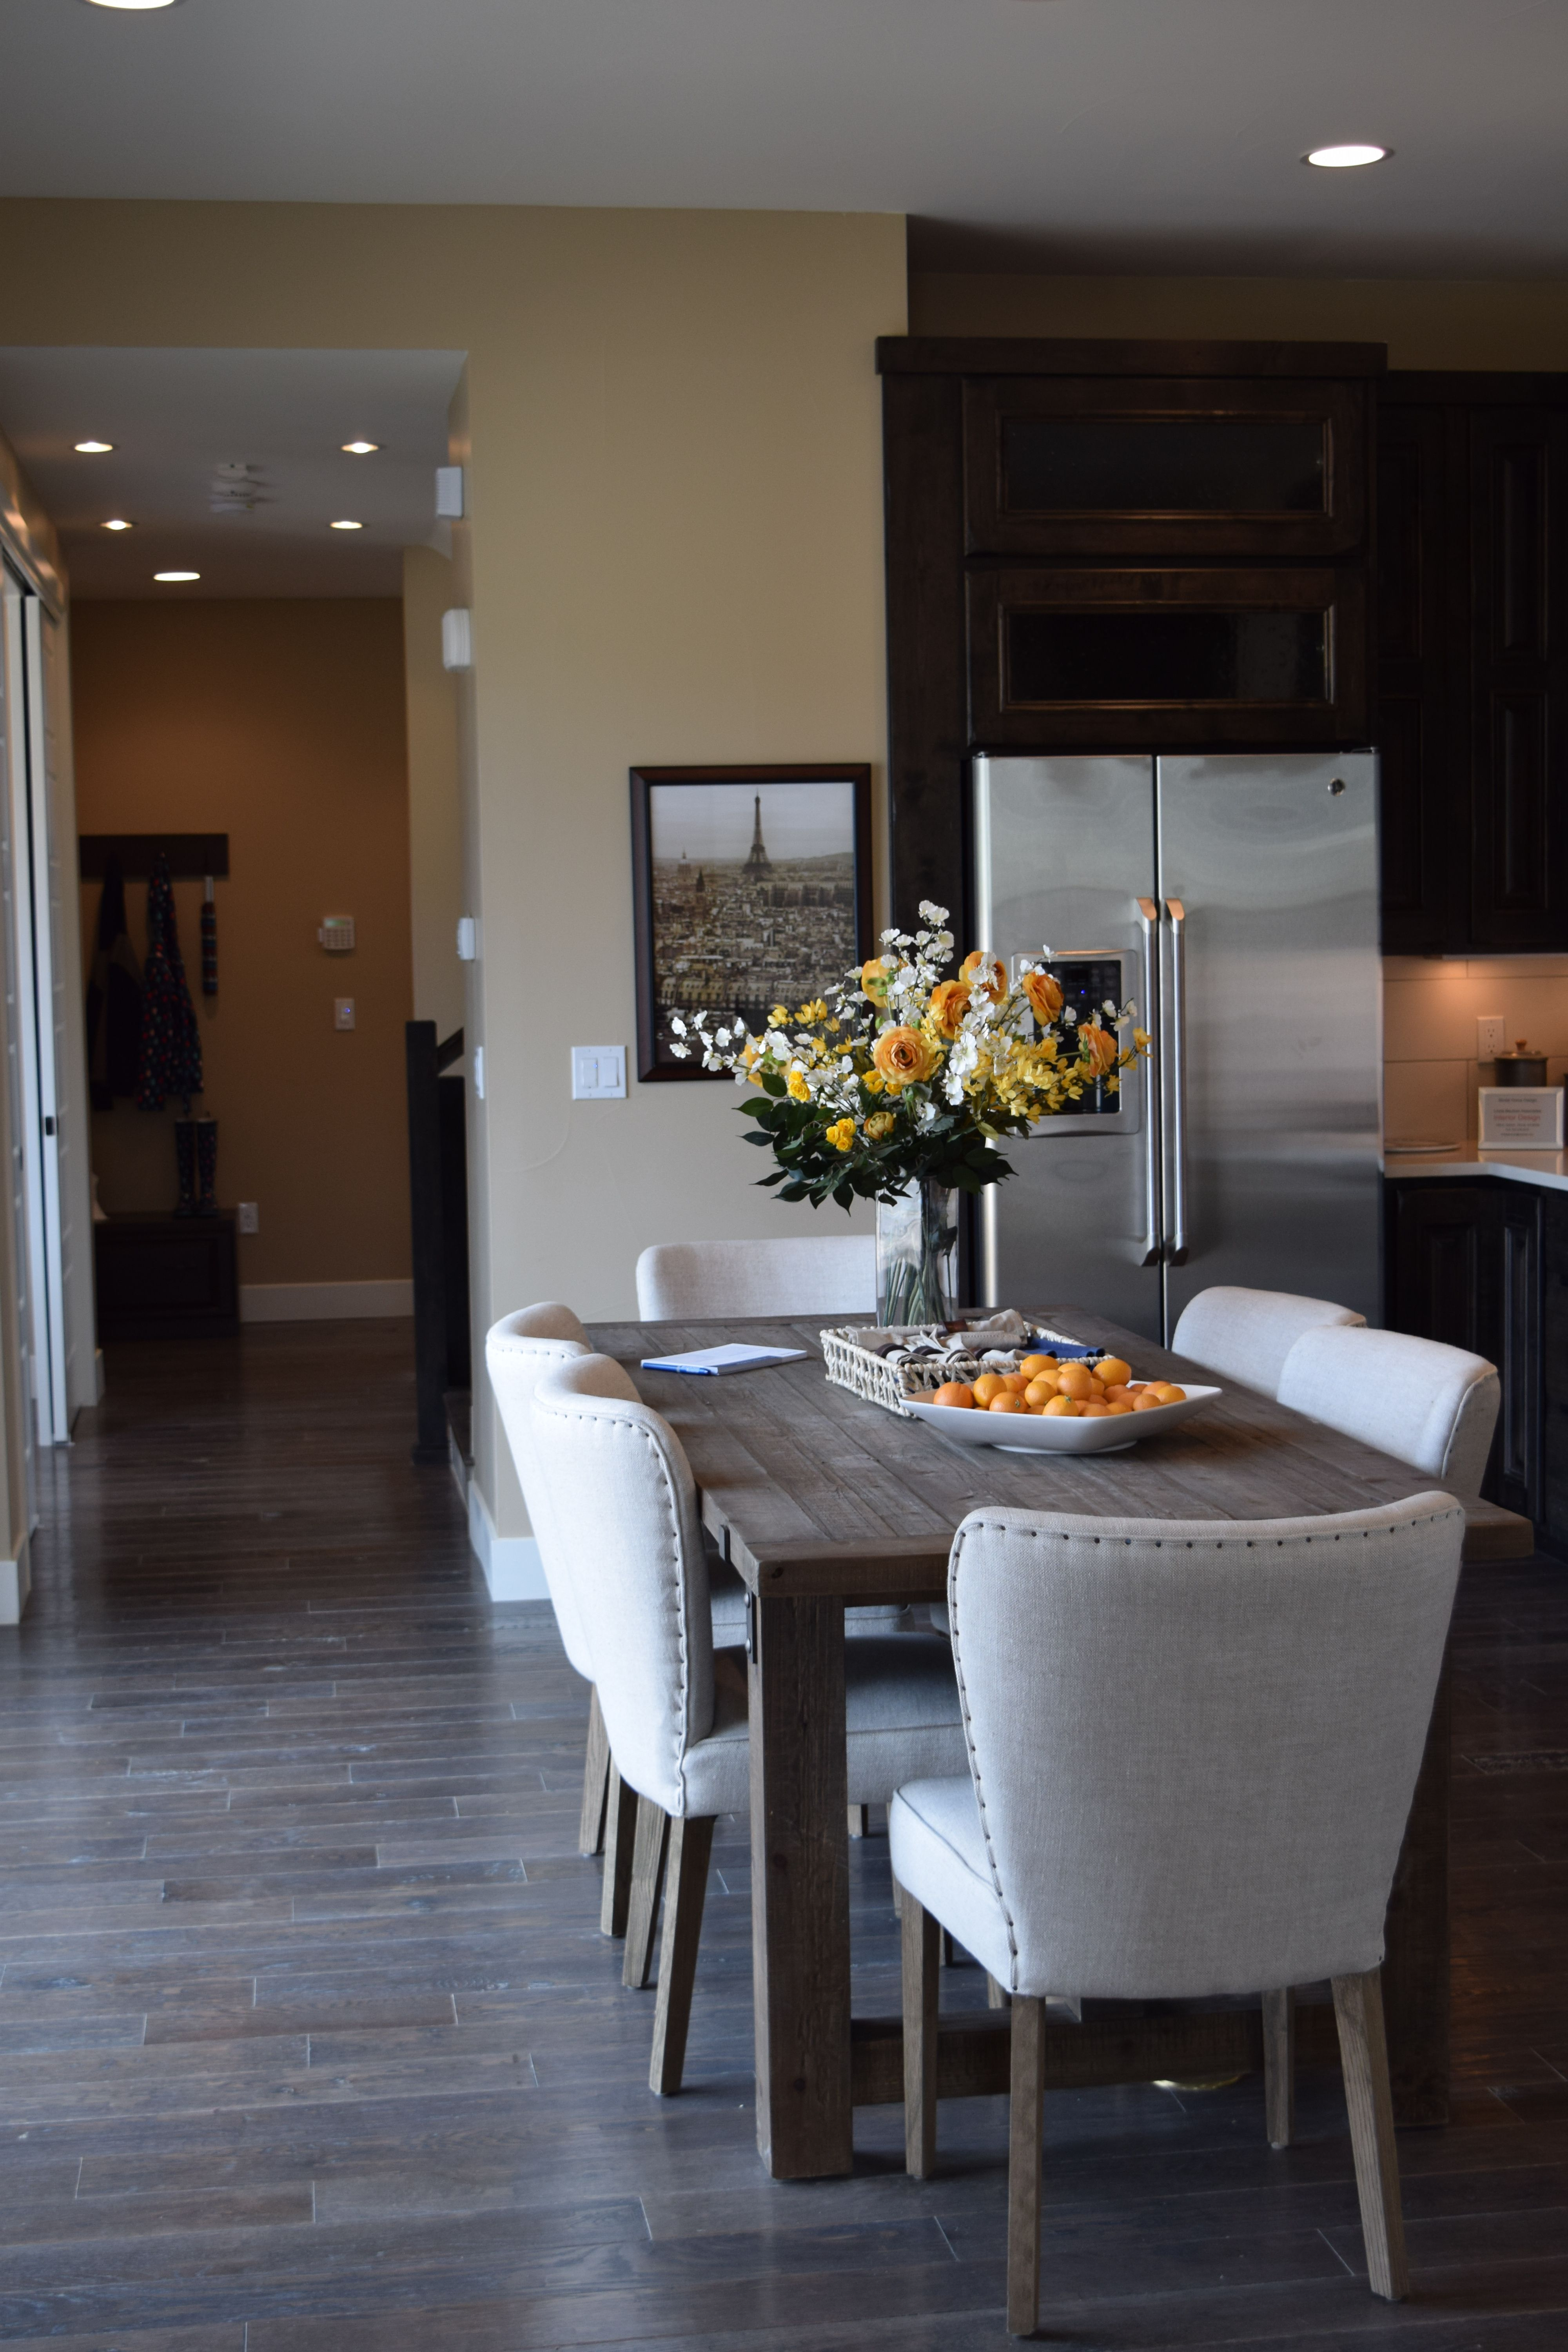 A closer kitchen view of the Brookfield model home where